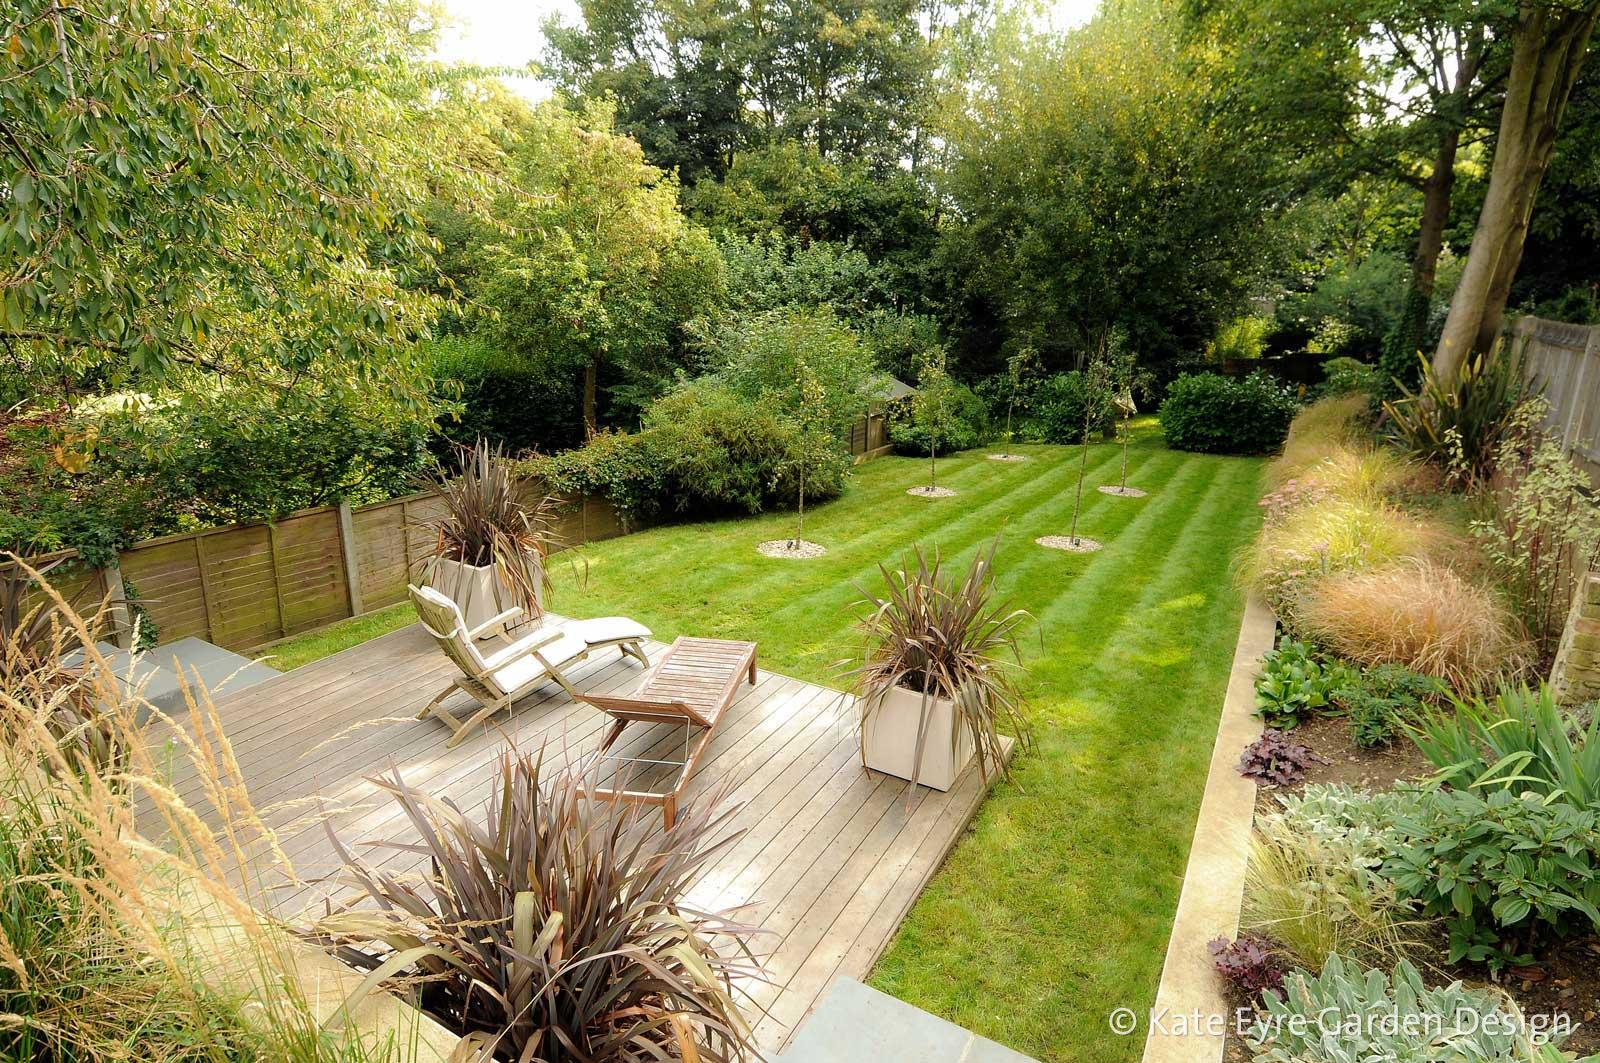 Garden design in crystal palace south east london for Garden in house designs